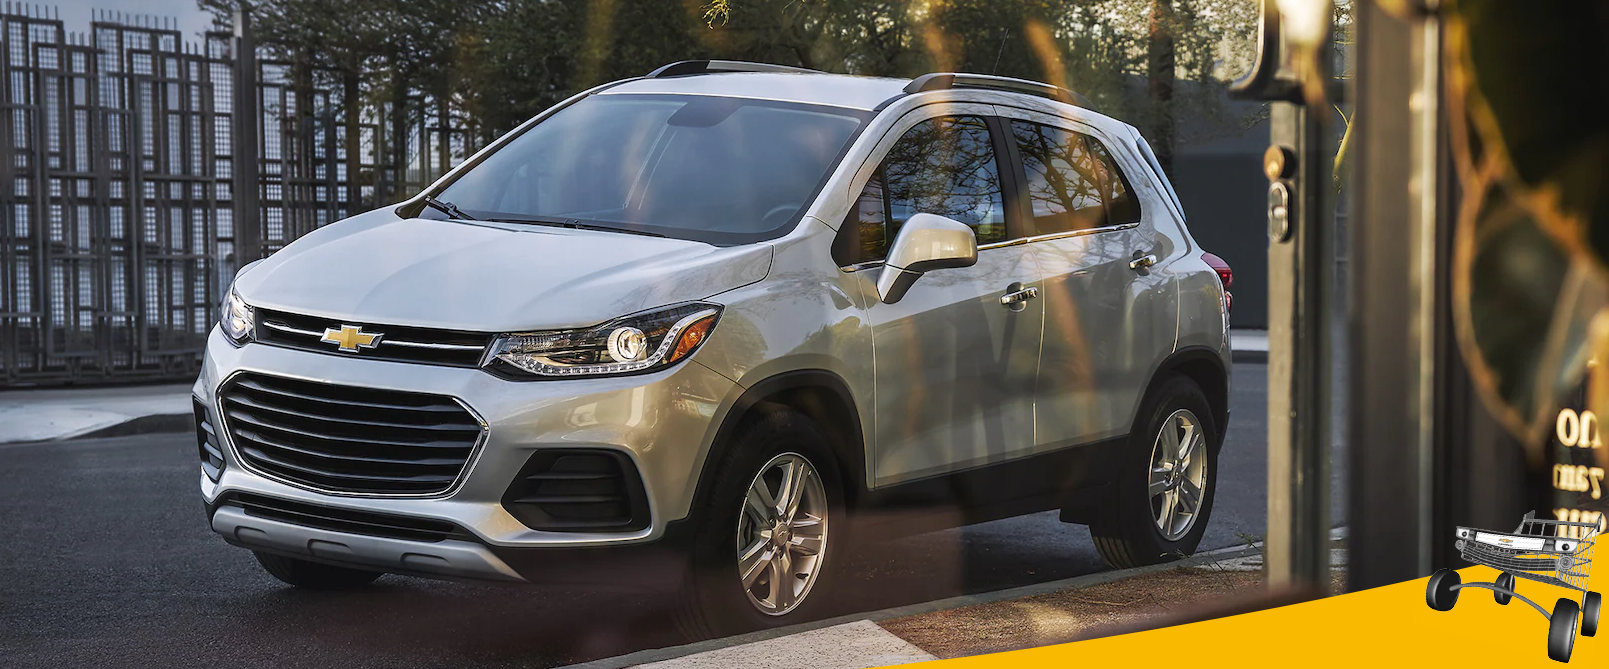 Everything You Need to Know About the 2021 Chevrolet Trax